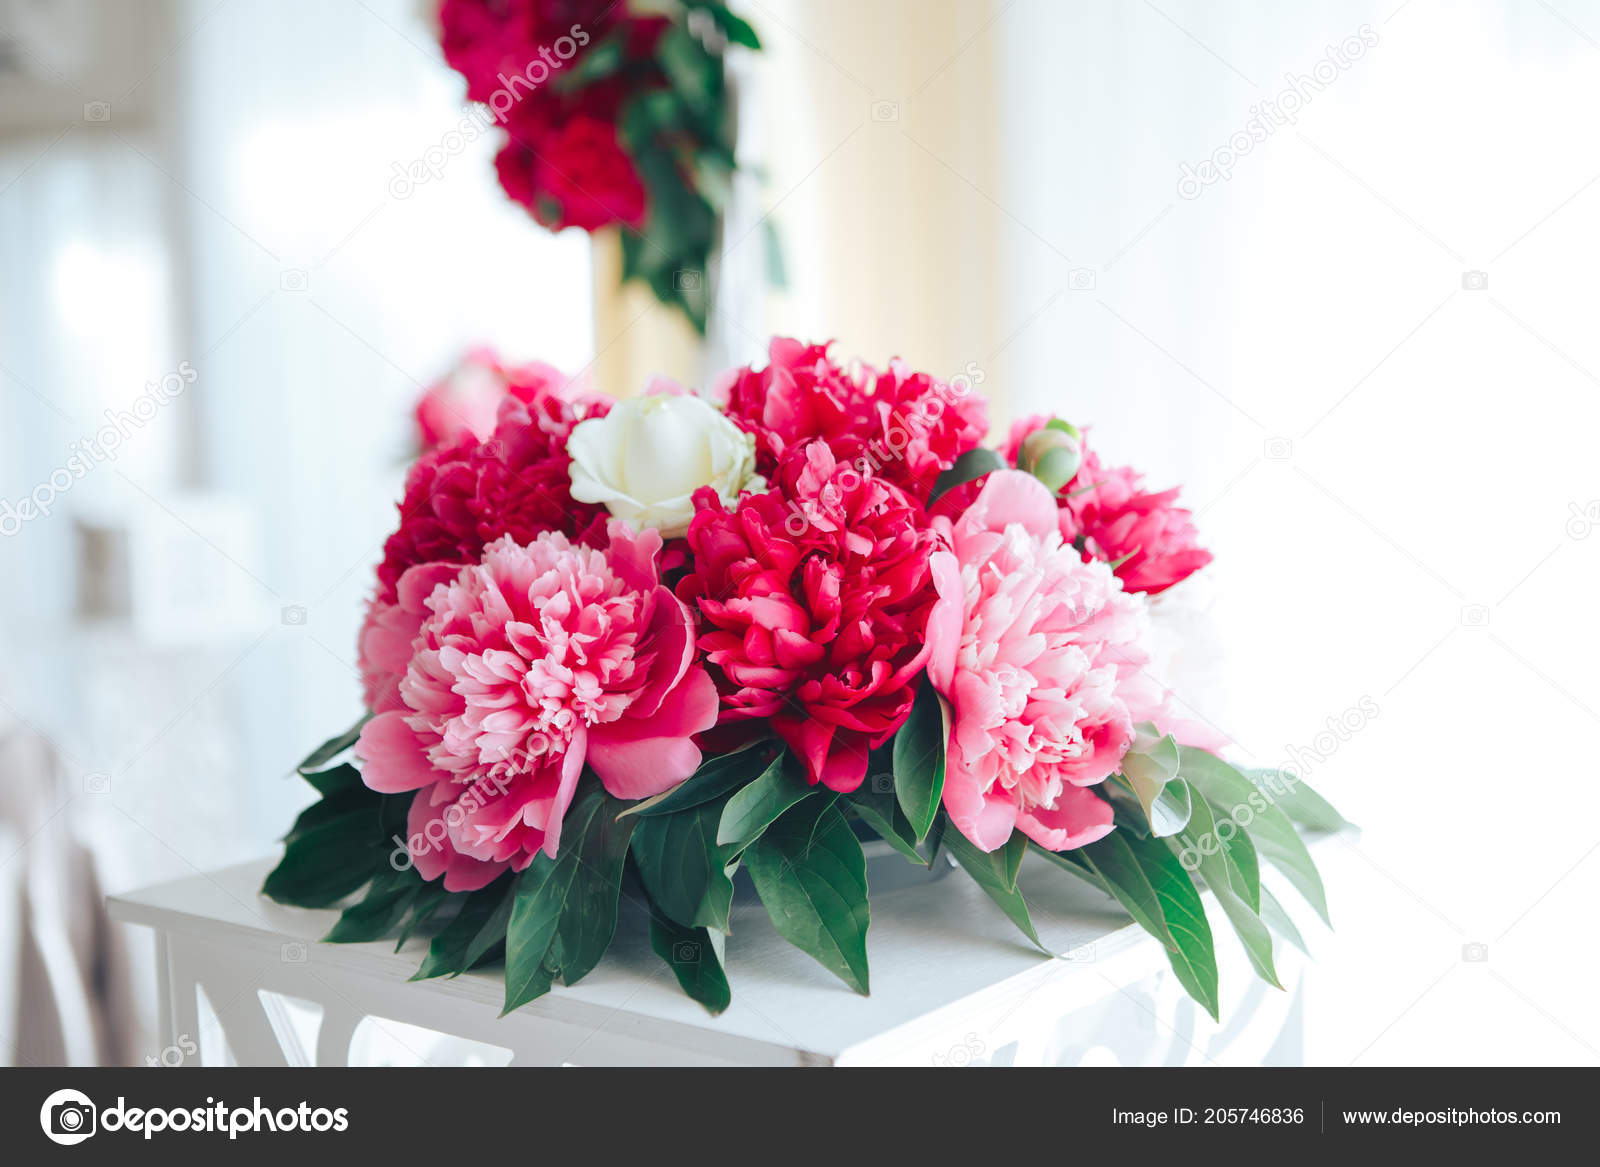 Peonies Maroon In The Restaurant Table Setting Wedding Decor Red